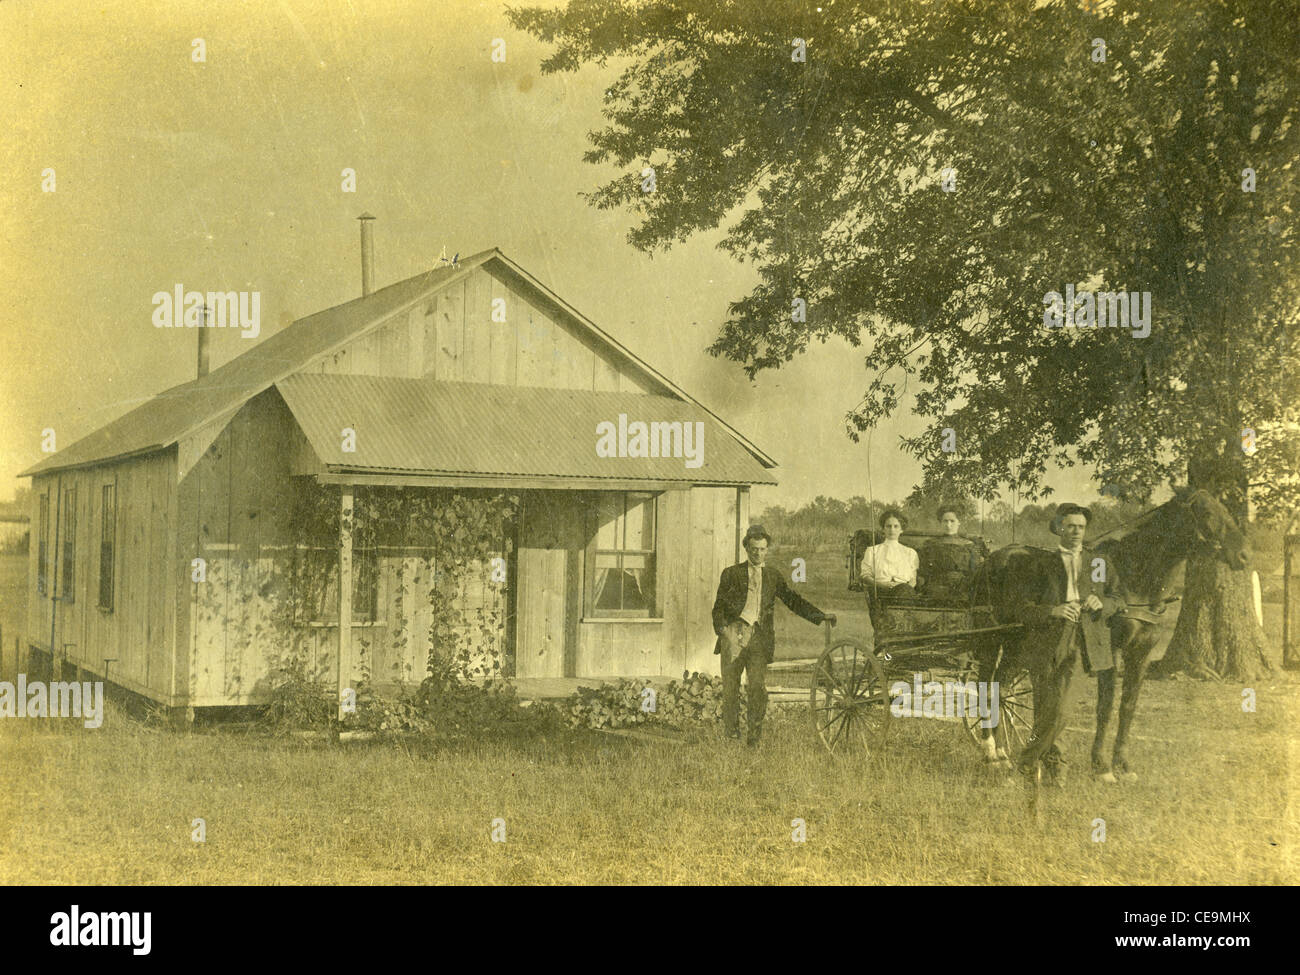 Settlers in front of wooden home on homestead during the late 1800s with horse and buggy carriage - Stock Image